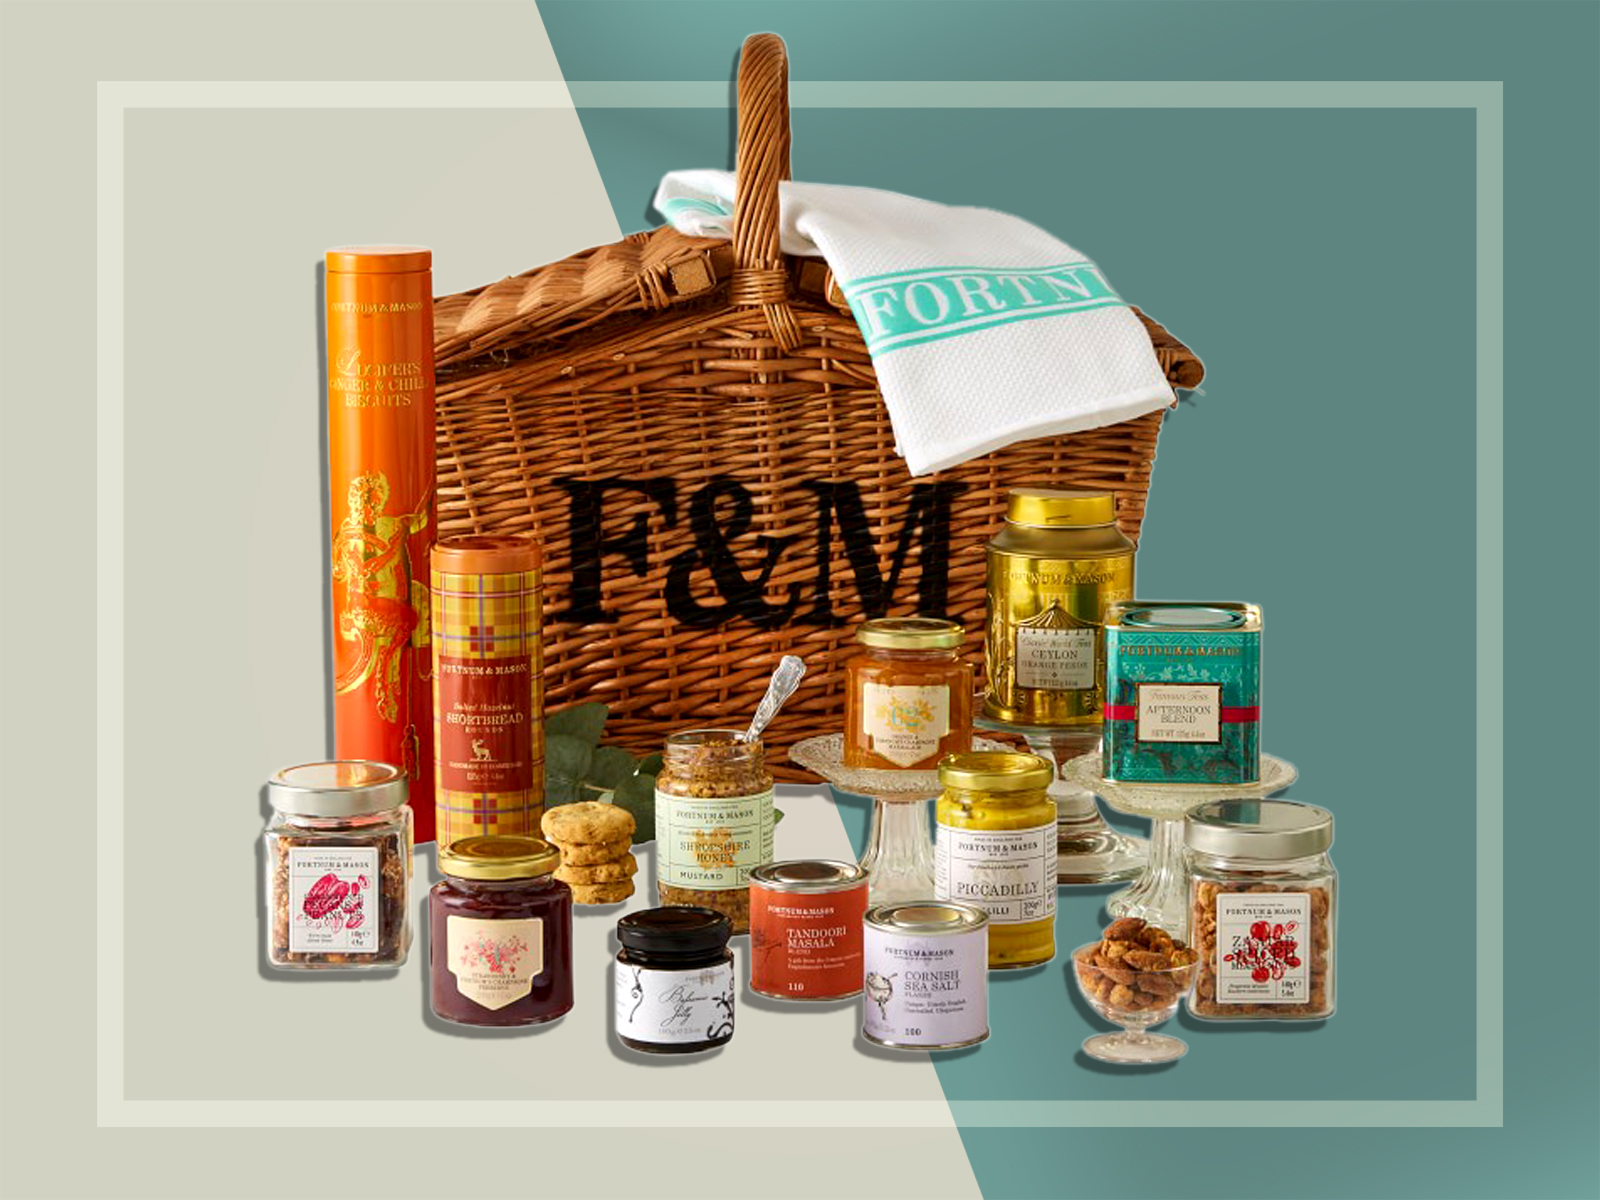 Williams-Sonoma Fortnum & Mason Gift Hamper